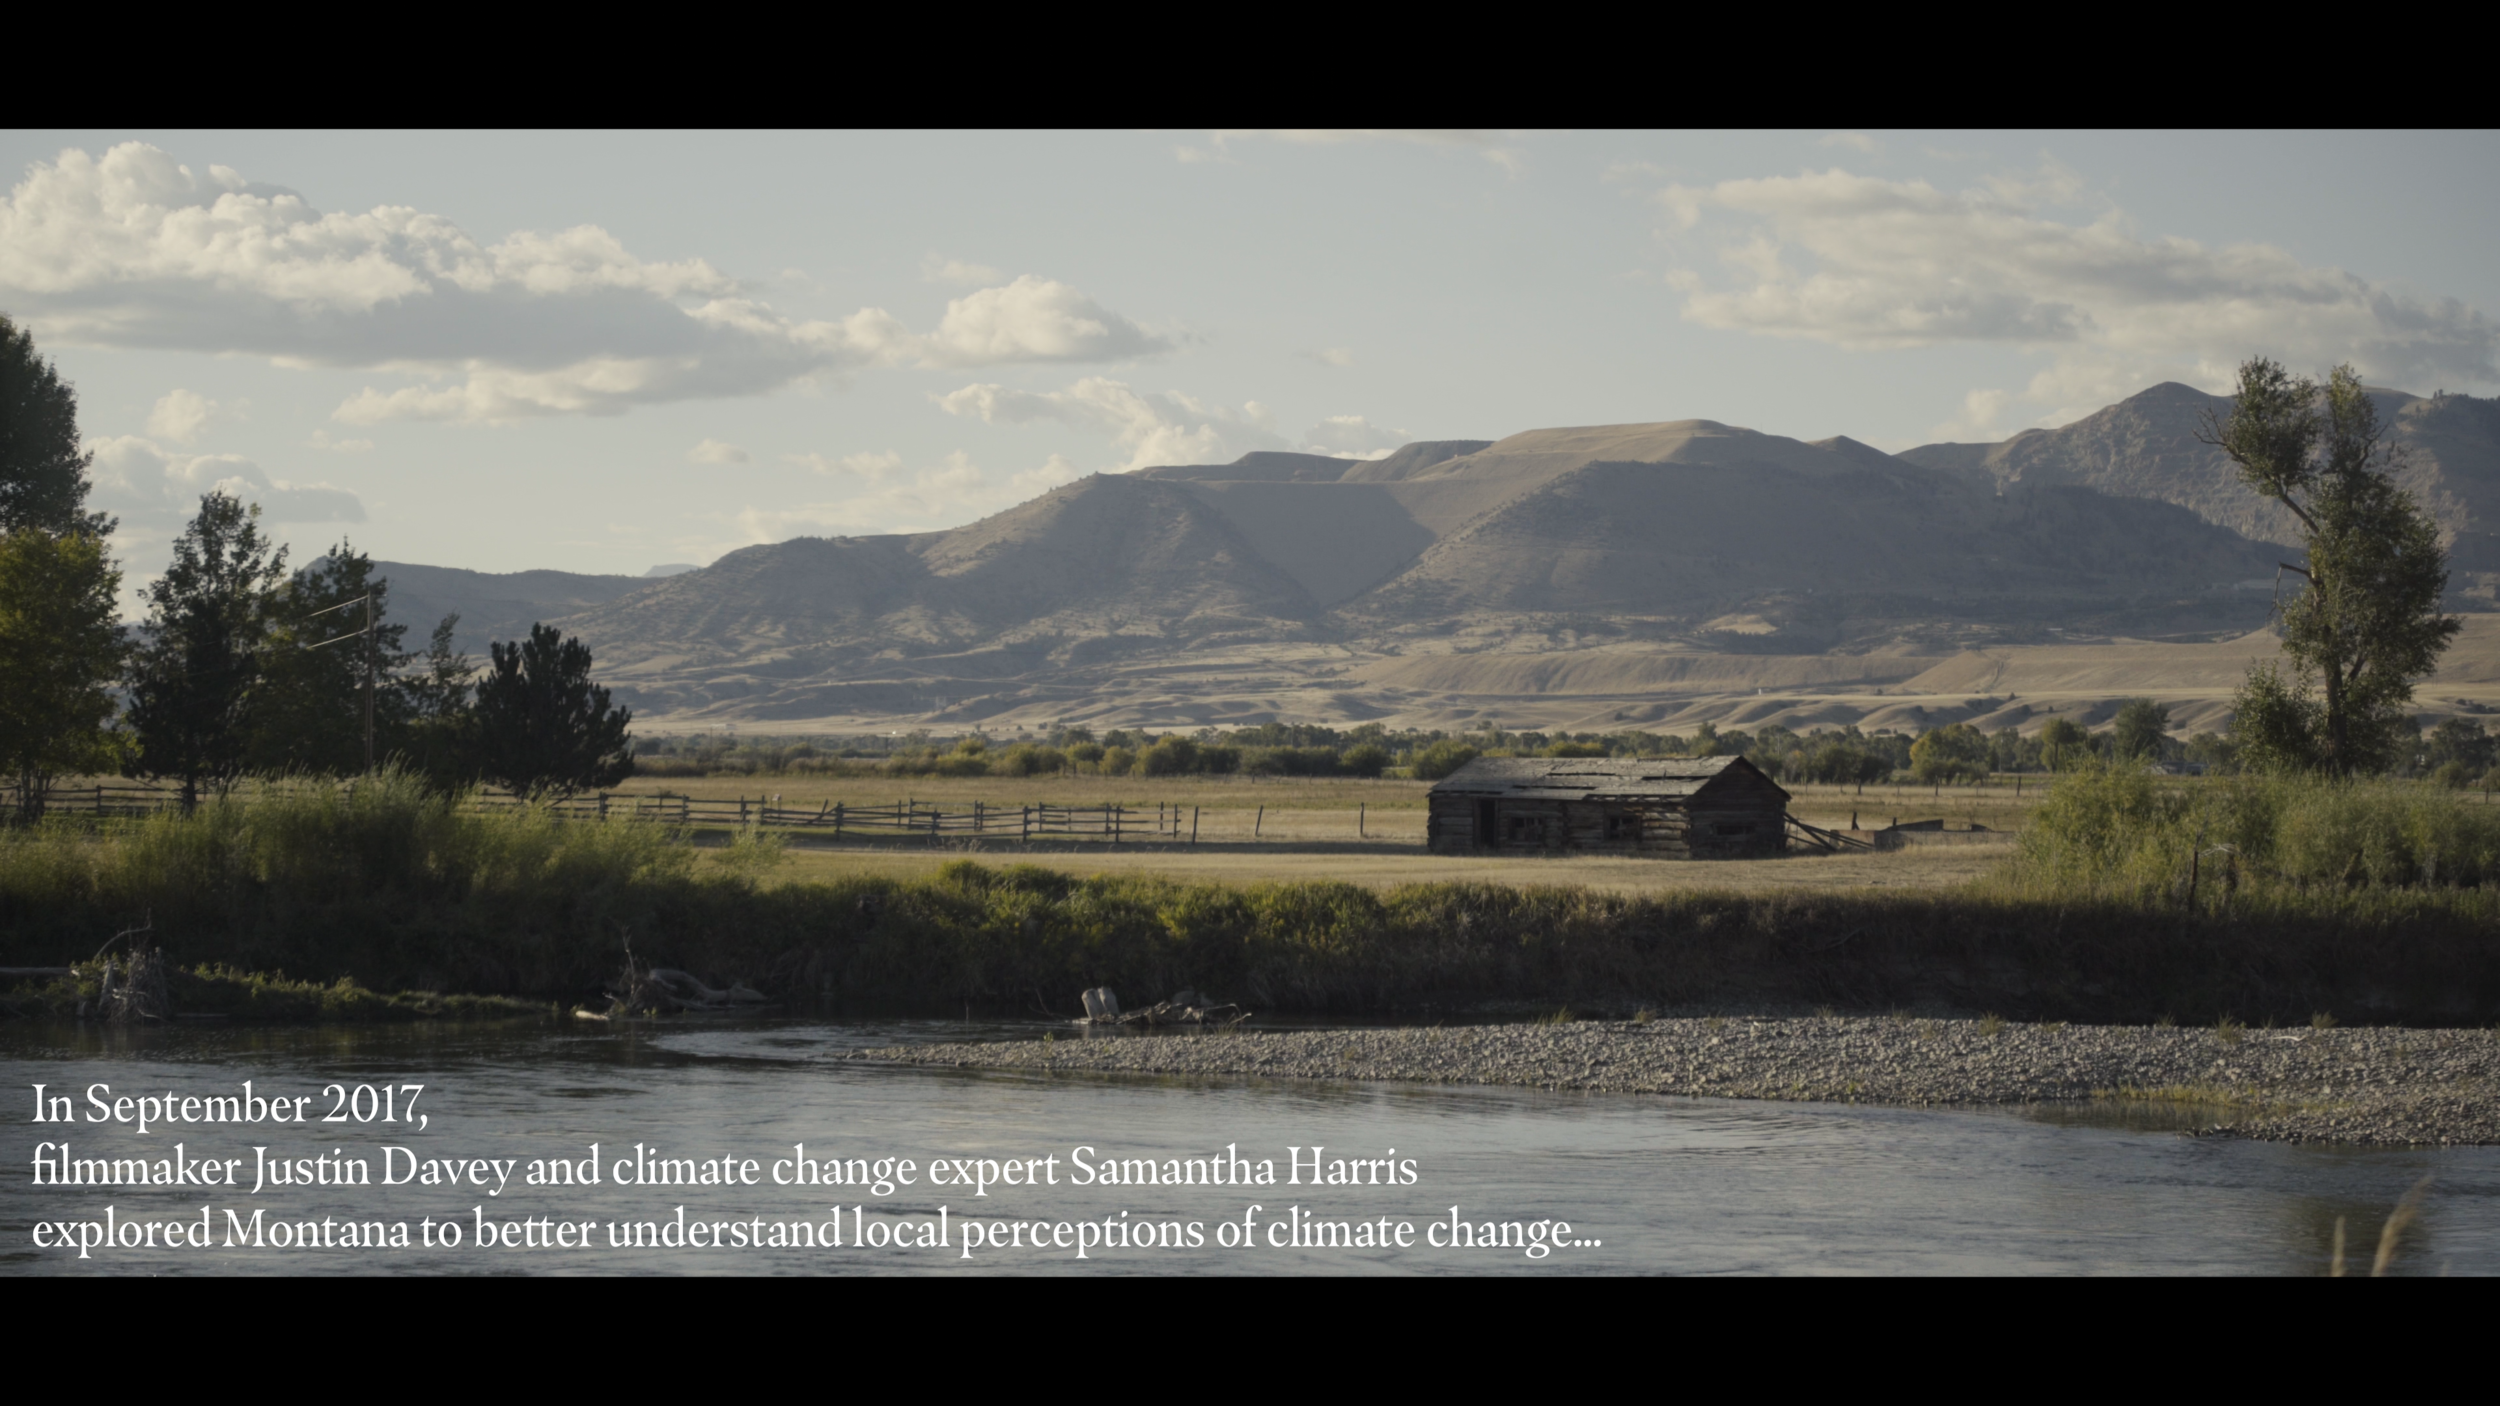 Inspired by the contemporary political divide, a New York Times article outlining the melting glaciers of Glacier National Park and a childhood dream of seeing Montana up close, Justin invited Samantha Harris on a 21 day exploration of the state to get to know Montanans, their culture and their land with a particular focus on climate change. This short film provides an insight into that experience.